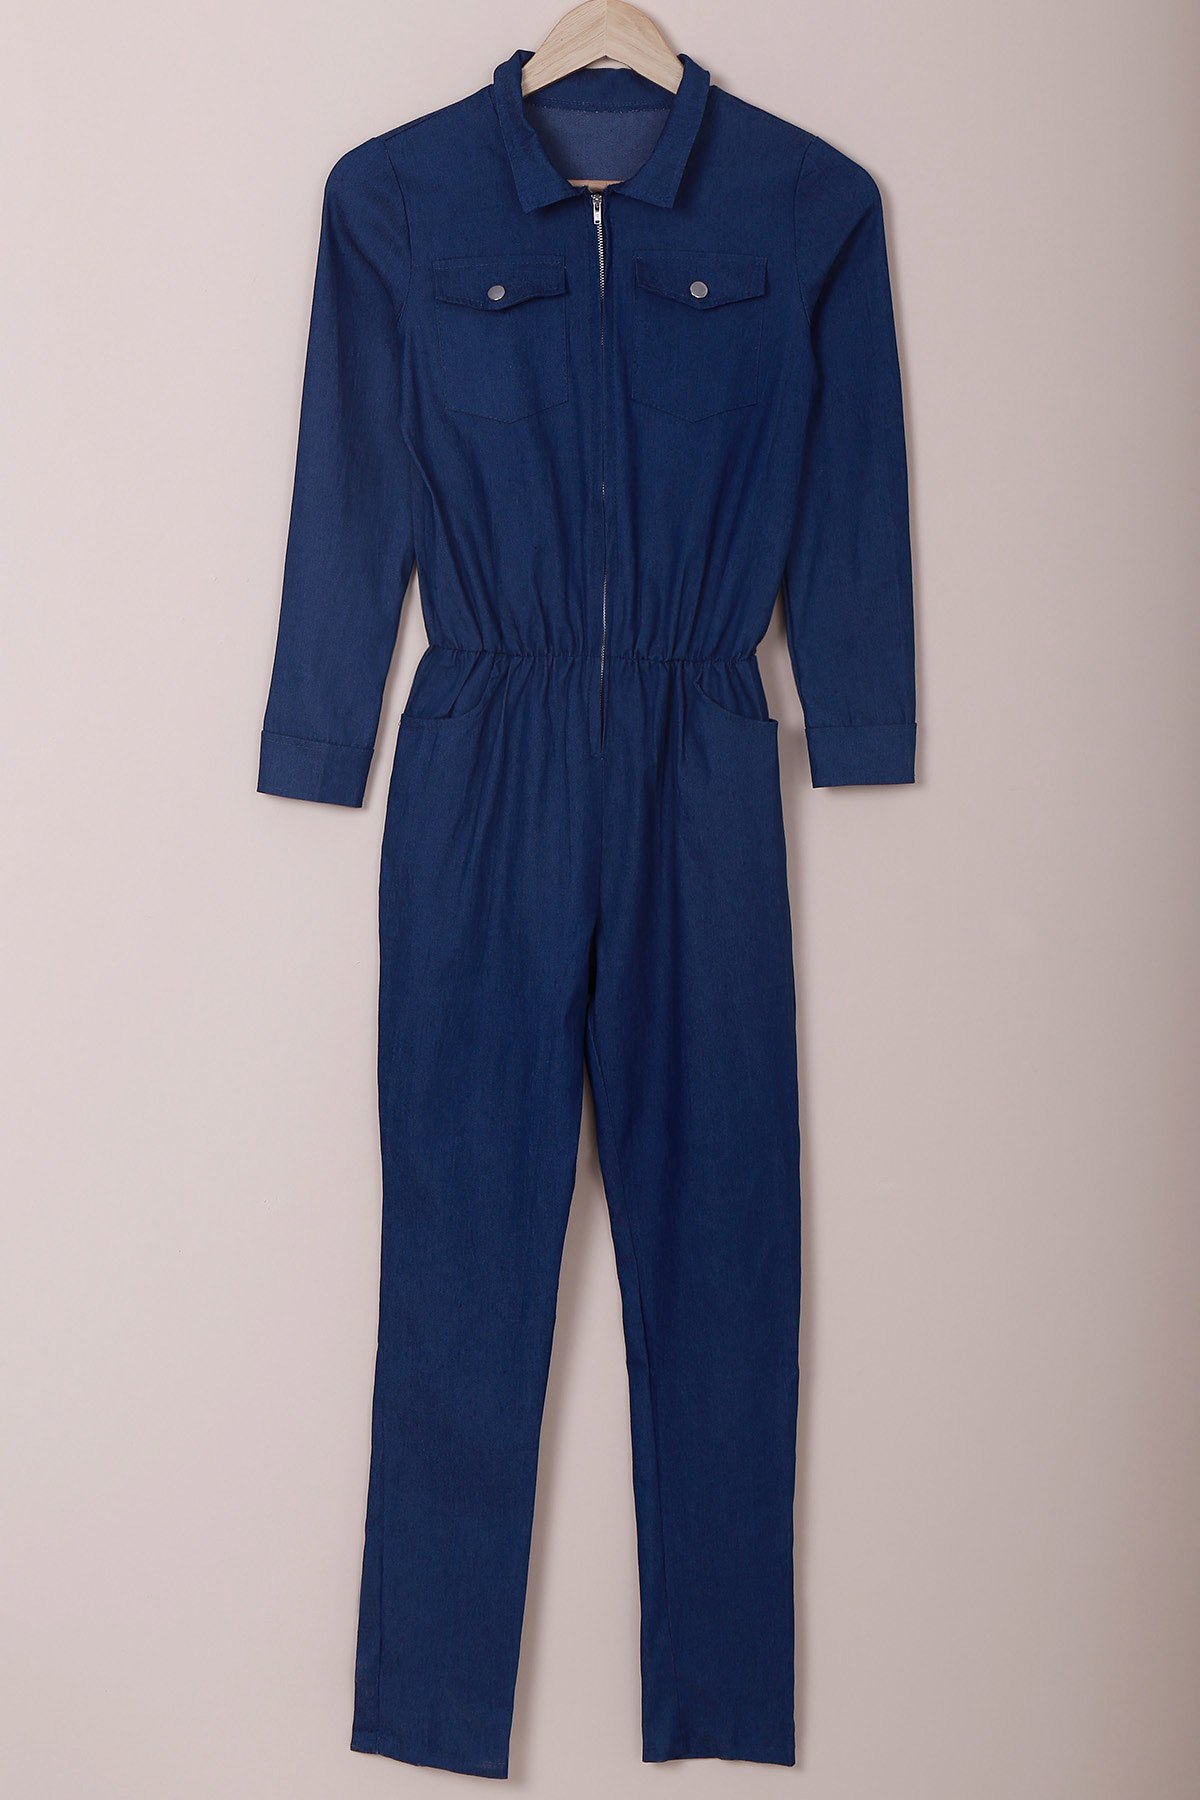 Novelty Turn-Down Collar Half Zippered Long Sleeve Denim Jumpsuit For Women